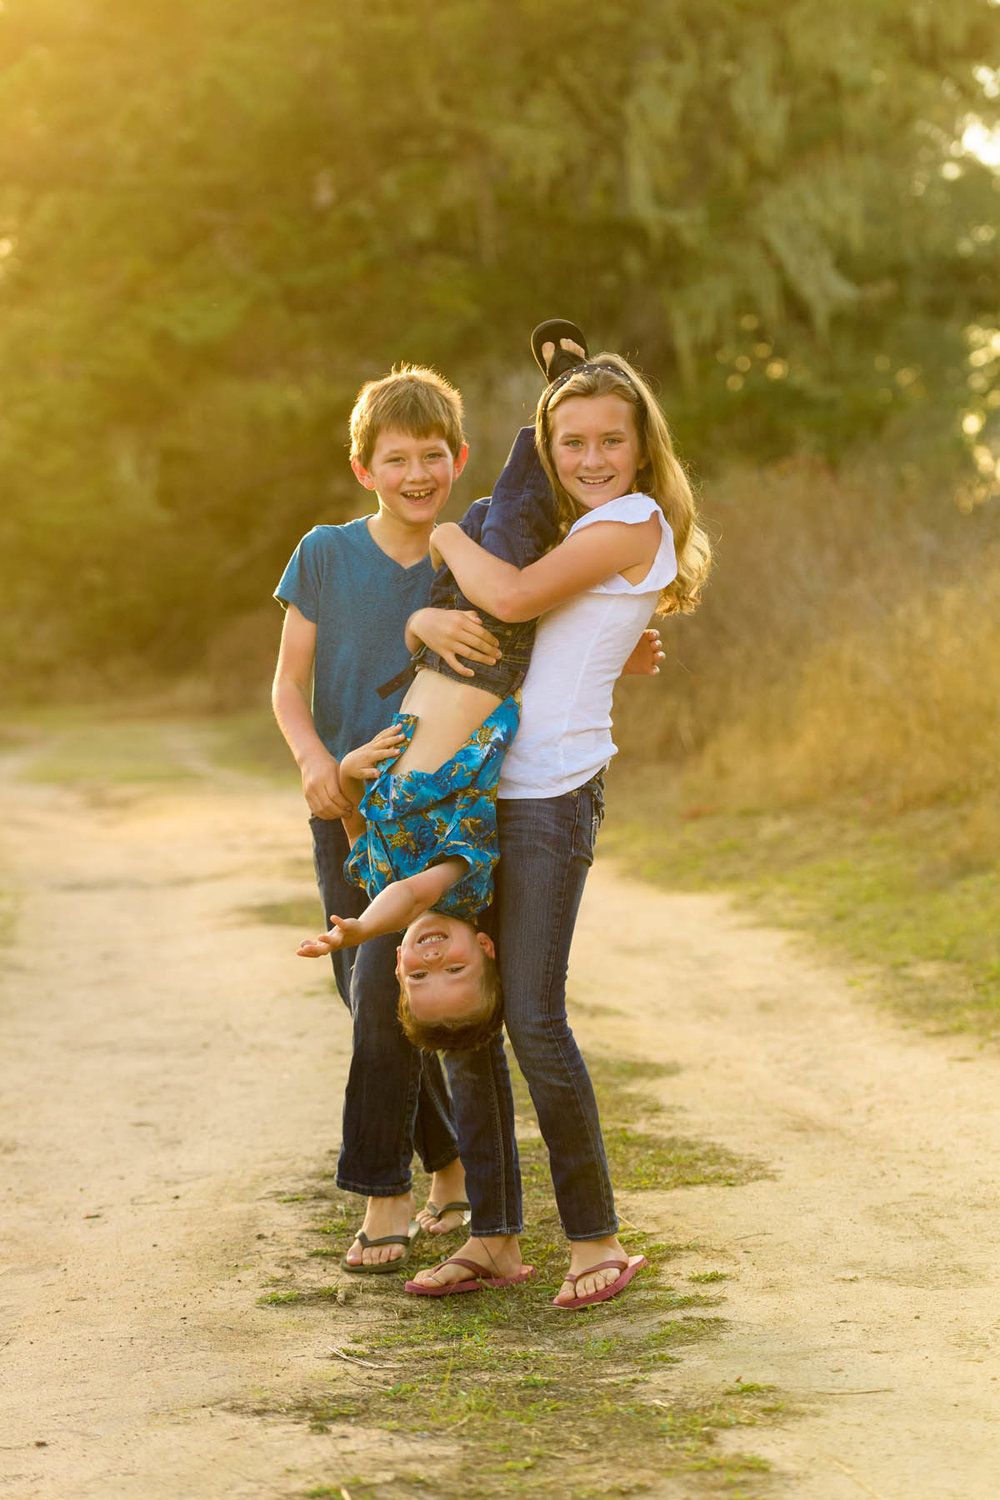 6077_Carrie_K_Natural_Bridges_Santa_Cruz_Family_Photography.jpg